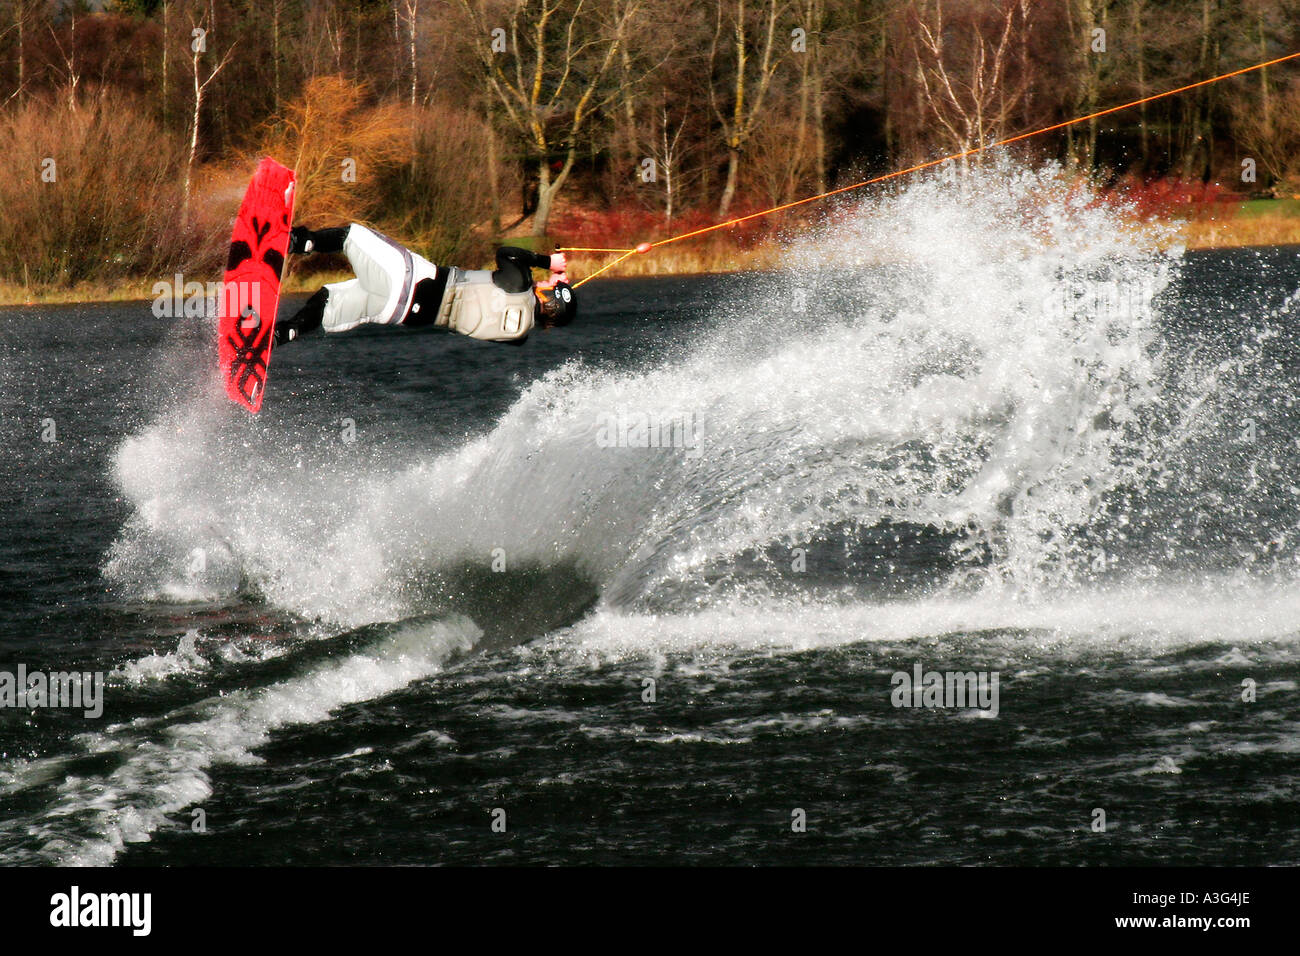 Wakeboarder Dave Ingram doing a back roll at WakeMK in Milton Keynes - Stock Image